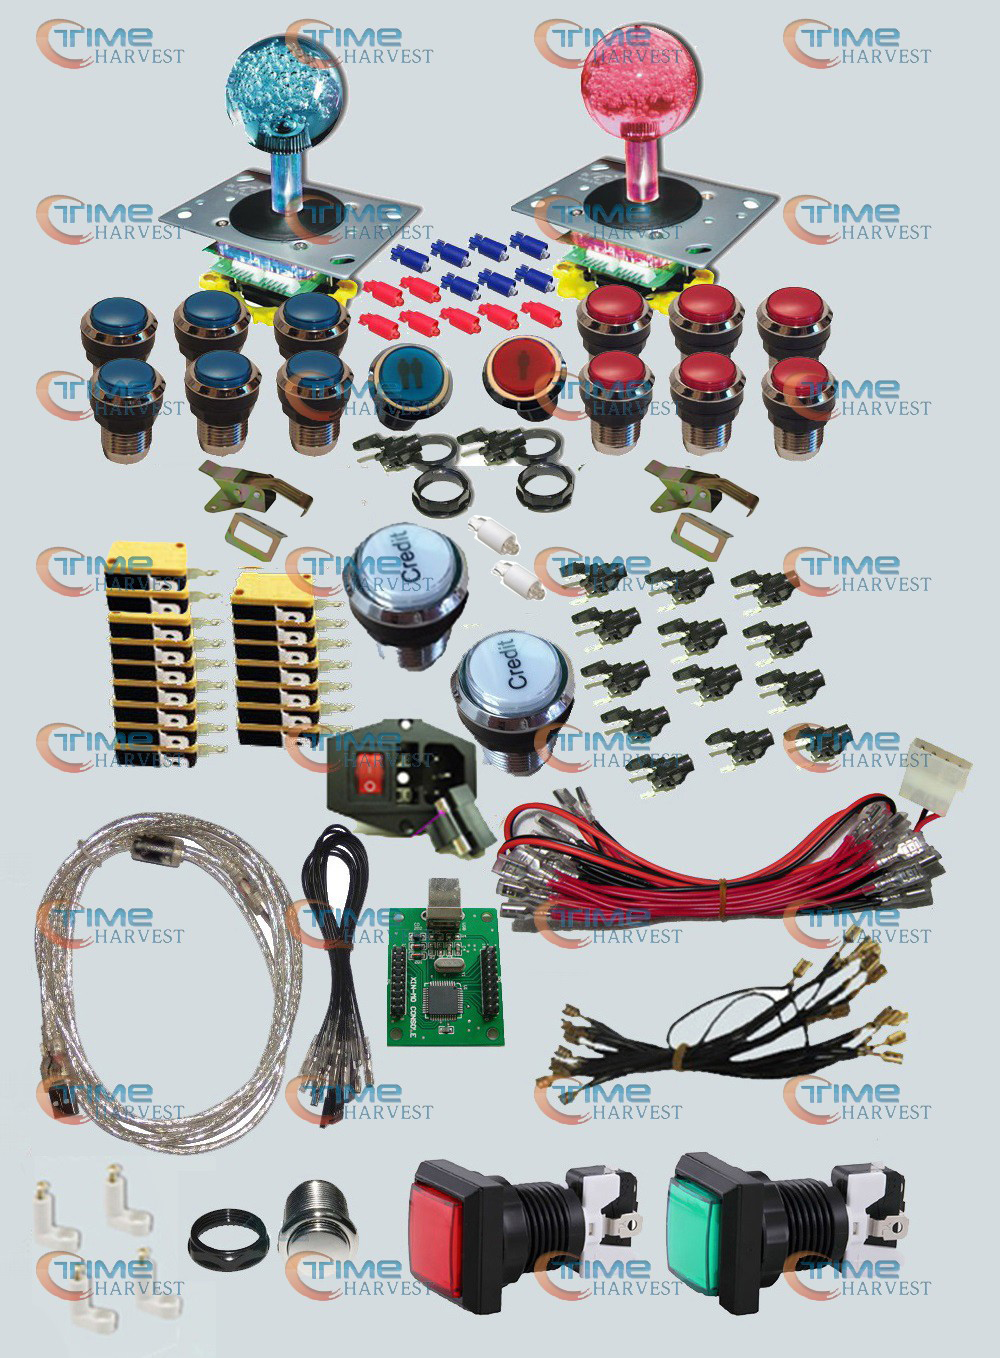 Arcade parts Bundles kit With LED Joystick chrome Illuminated buttons Microswitch 2 player USB to Jamma Build Up Arcade cabinet arcade parts bundles kits with joystick push button microswitch coin door jamma harness to build up arcade machine by yourself